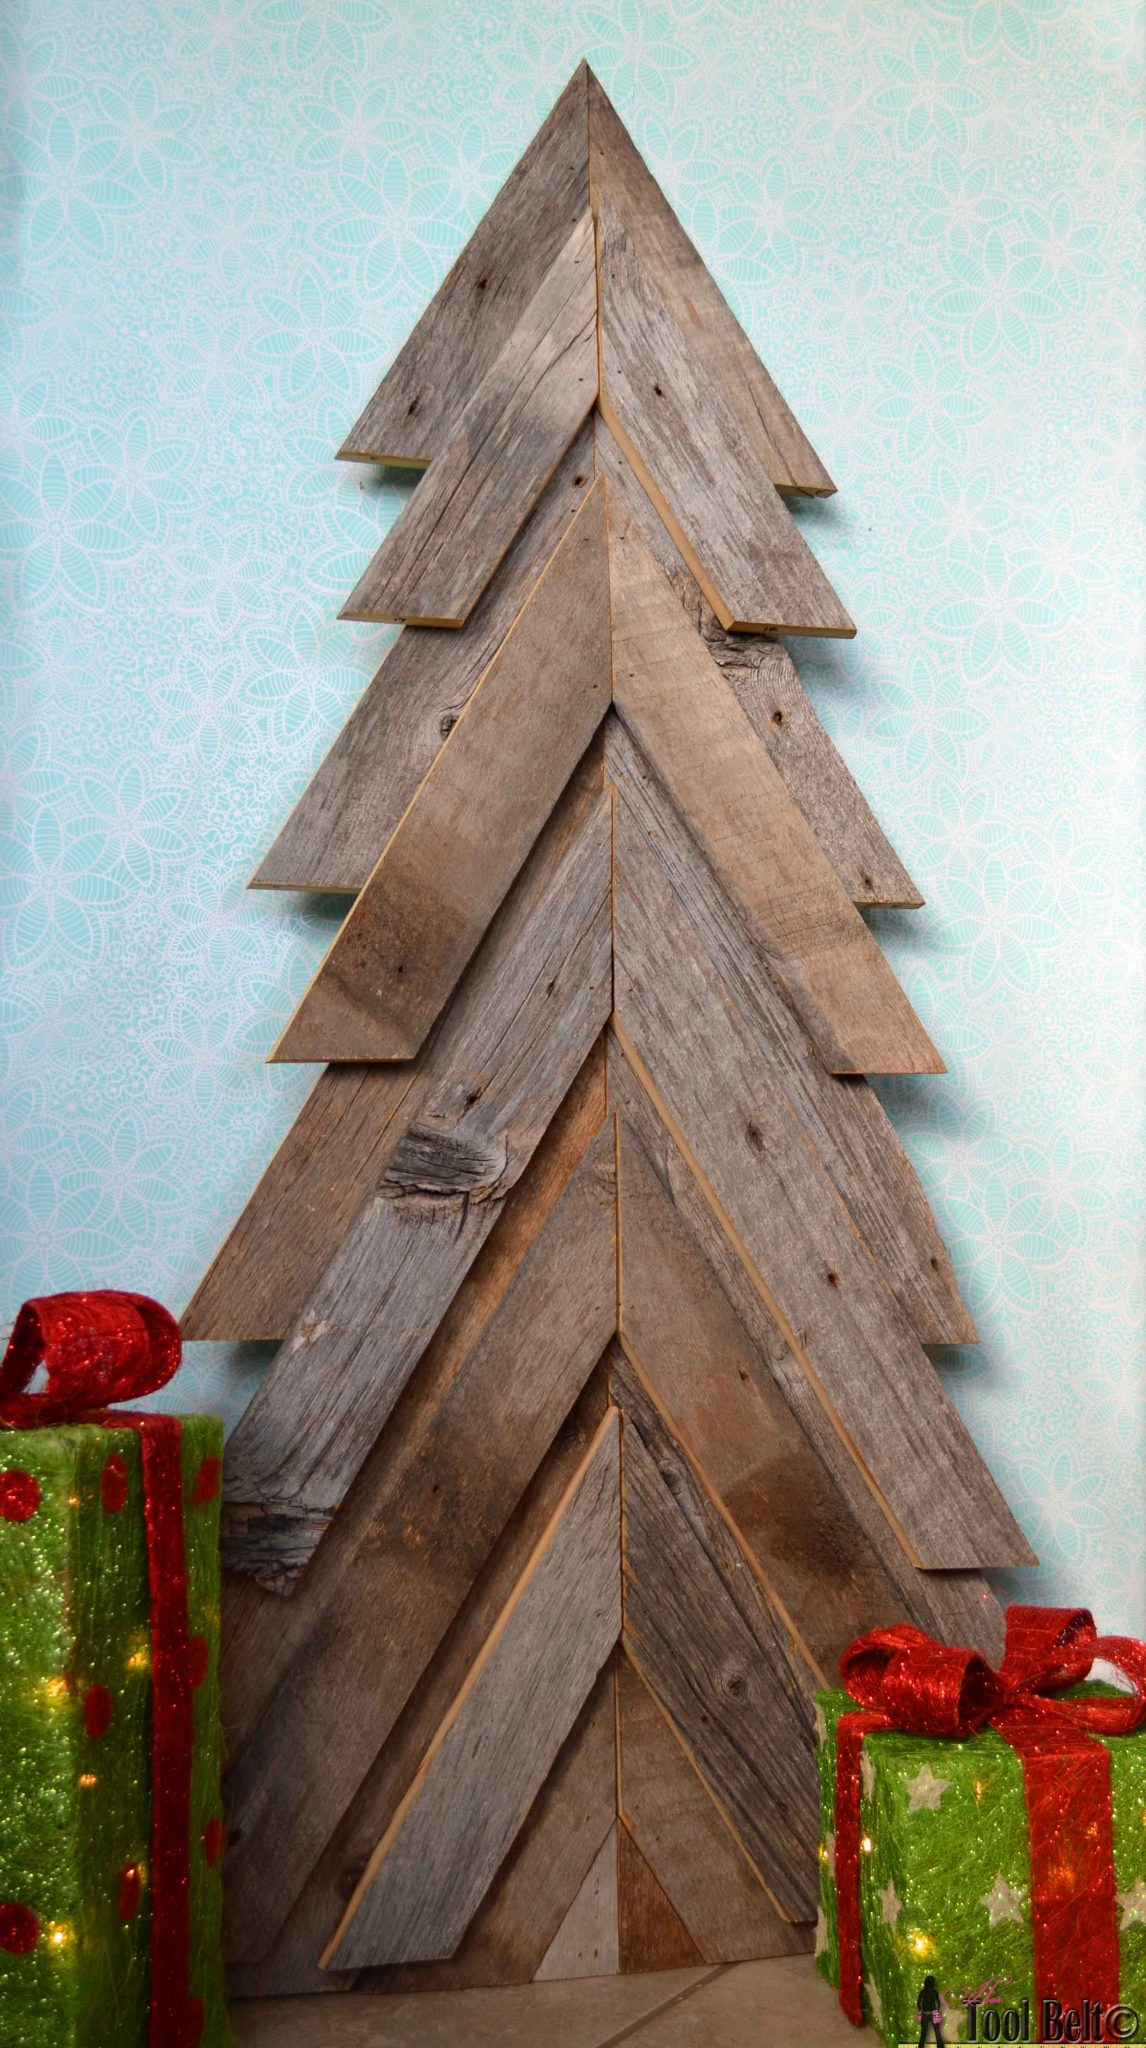 Rustic Wooden Decor Rustic Christmas Tree Her Tool Belt